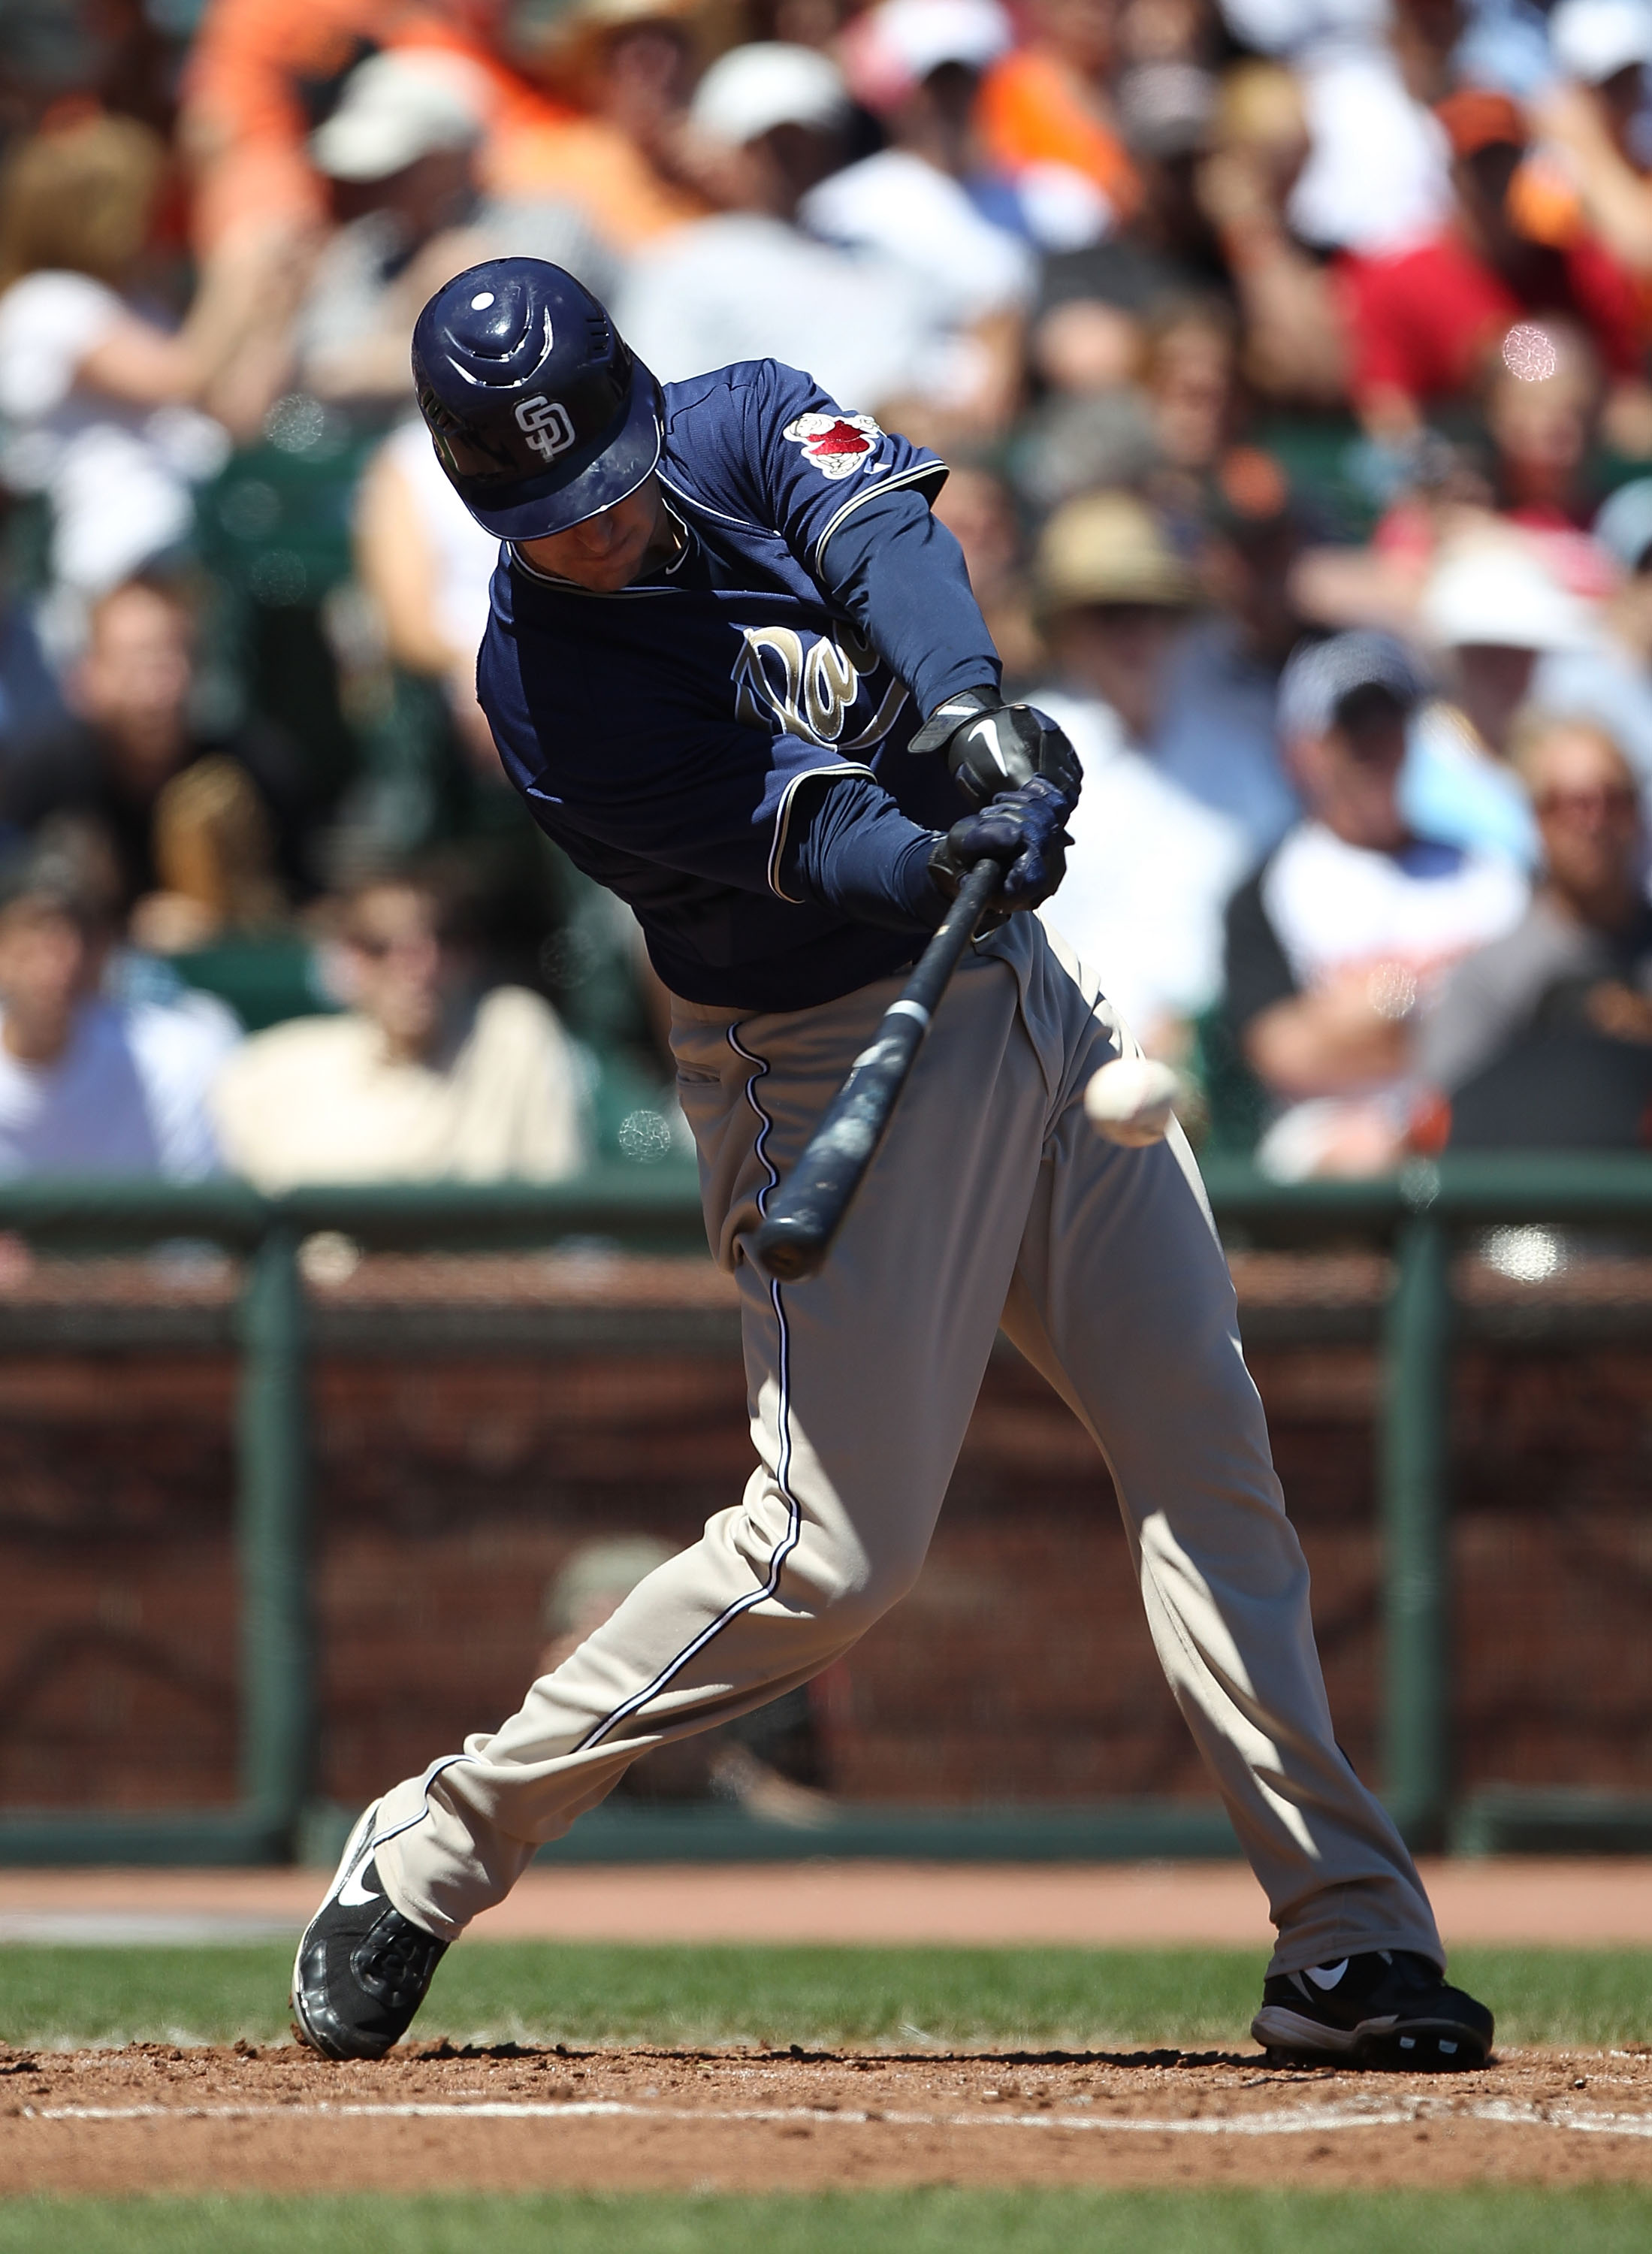 SAN FRANCISCO - AUGUST 14:  Ryan Ludwick #47 of the San Diego Padres bats against the San Francisco Giants during an MLB game at AT&T Park on August 14, 2010 in San Francisco, California.  (Photo by Jed Jacobsohn/Getty Images)